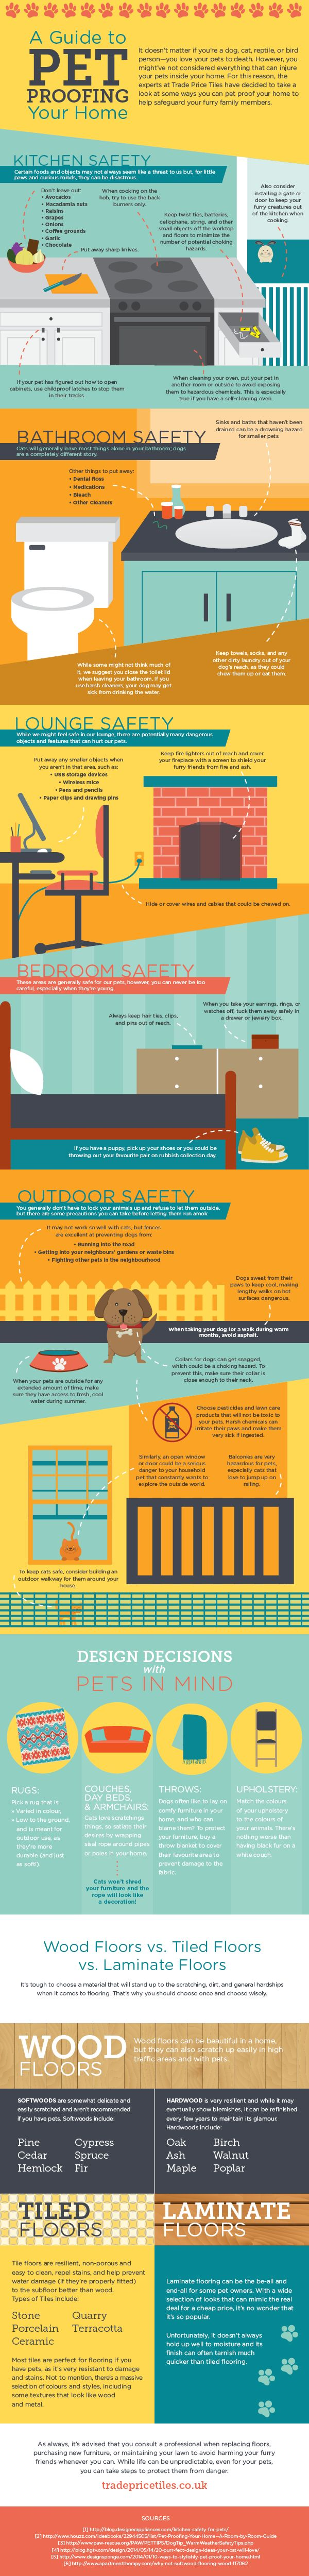 Pet Proofing Your Home: Infographic